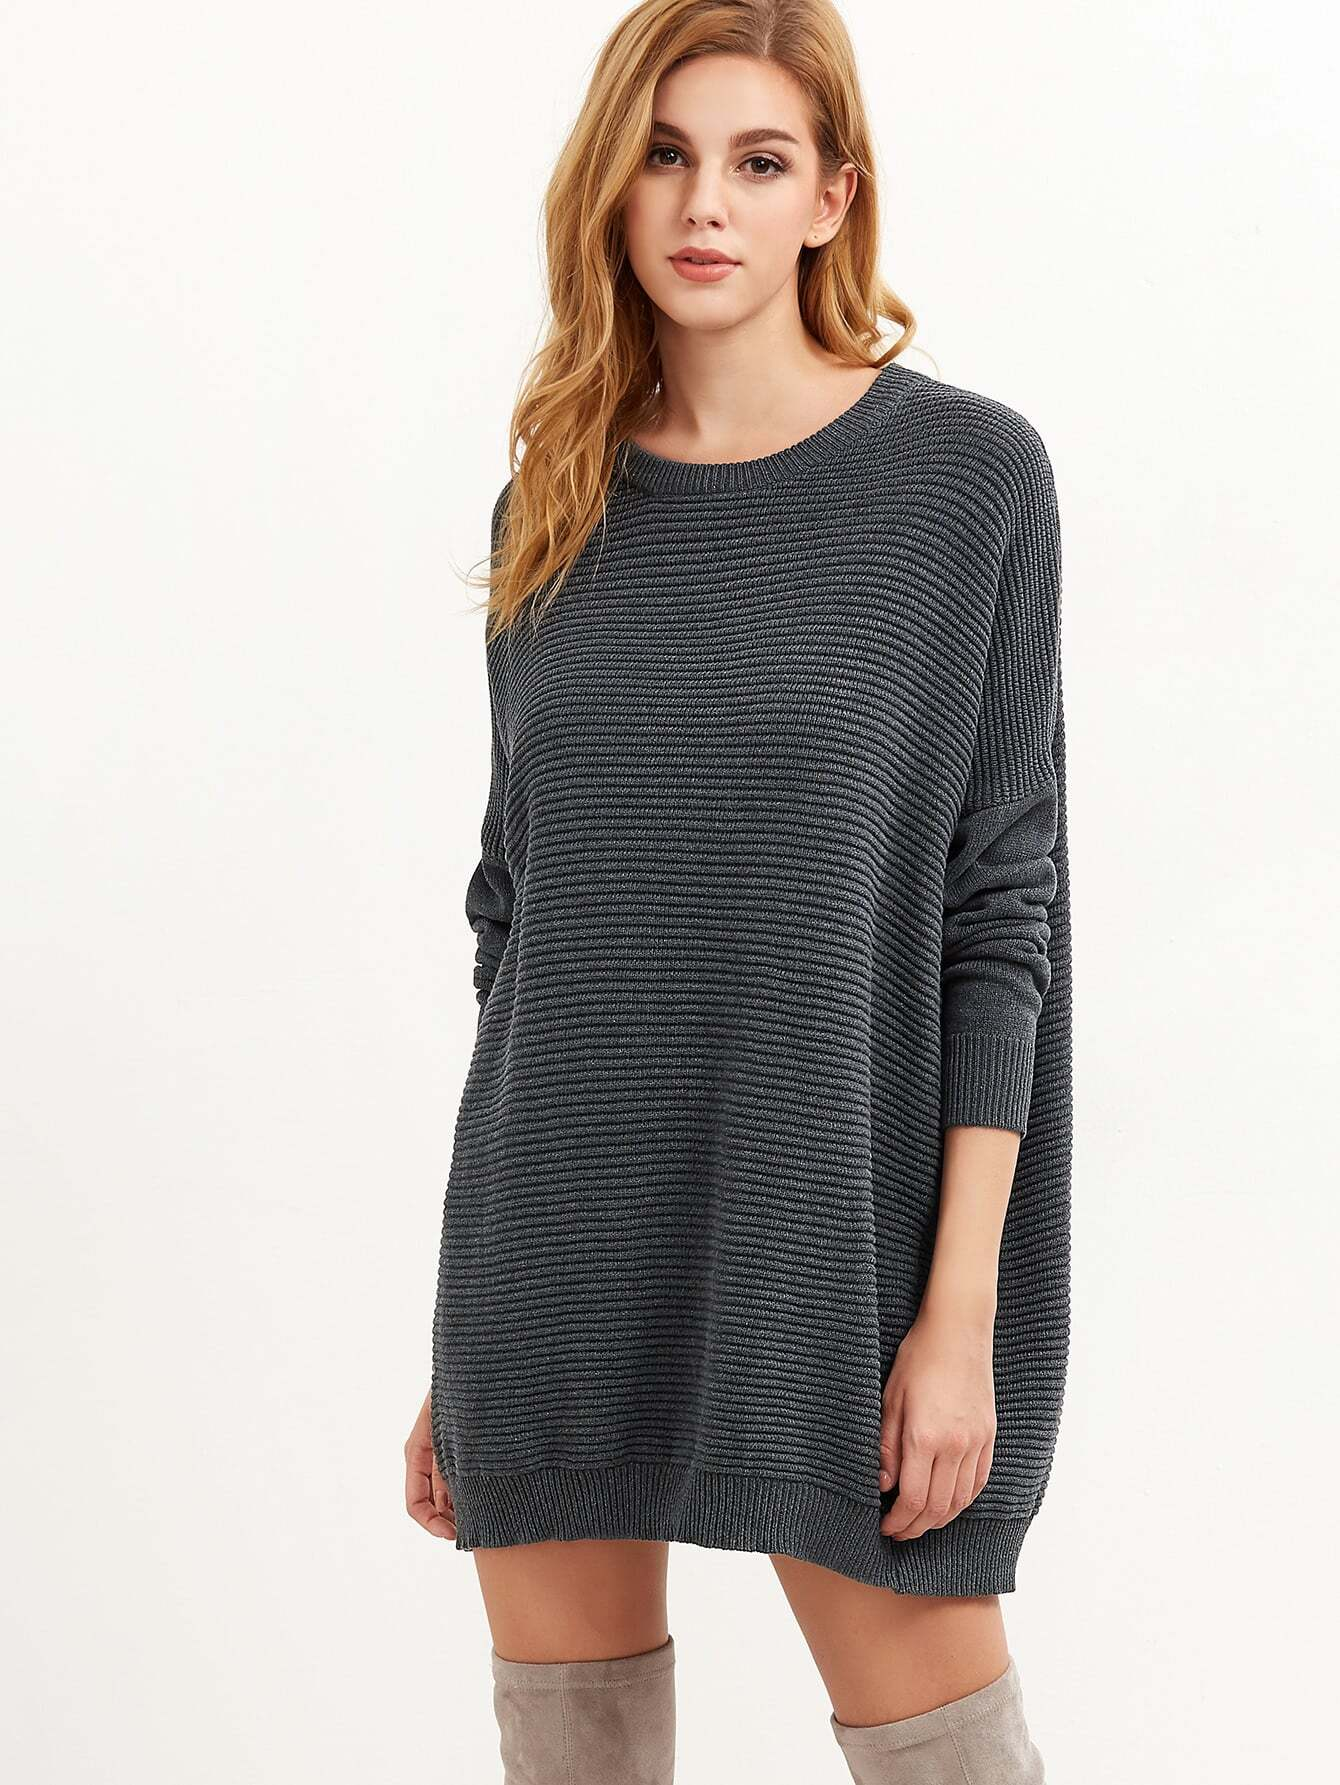 Grey Ribbed Knit Drop Shoulder Oversized Sweater sweater161107461